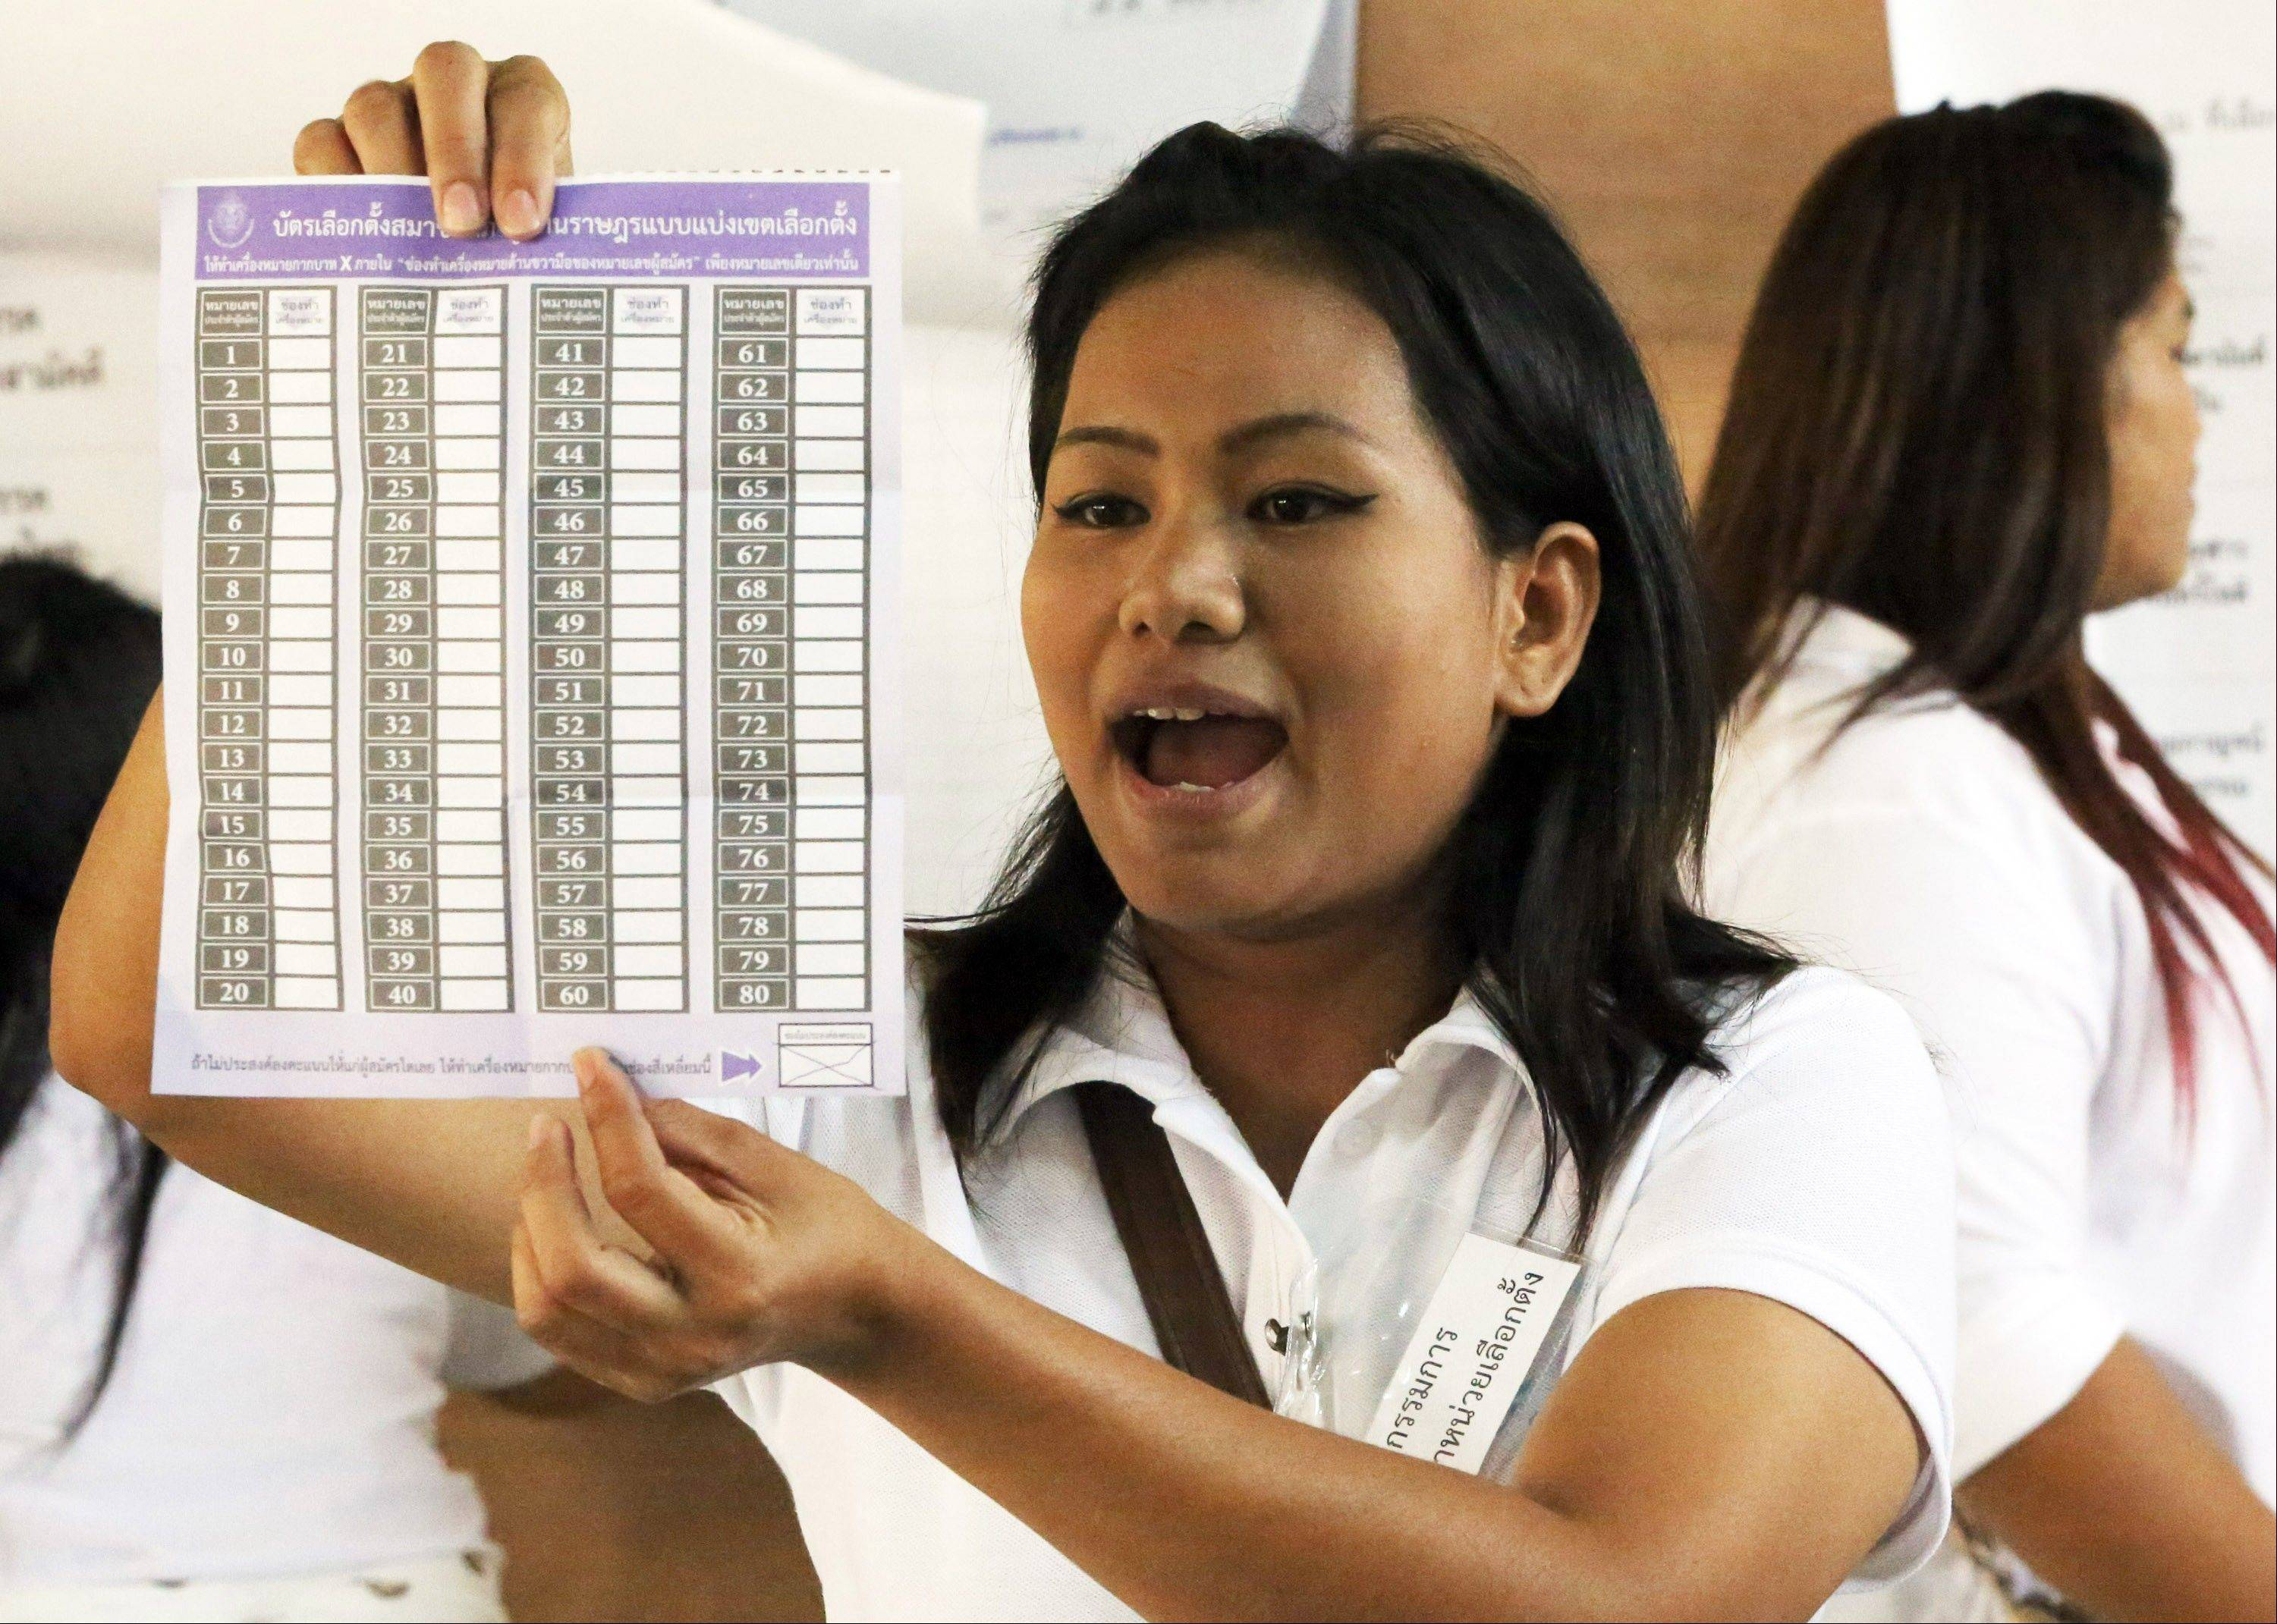 An election official reads a ballot during a vote counting after the general election in Bangkok Sunday. Protesters trying to derail Thailand�s national elections Sunday forced the closure of hundreds of polling stations in a highly contentious vote that has become the latest flash point in the country�s deepening political crisis.